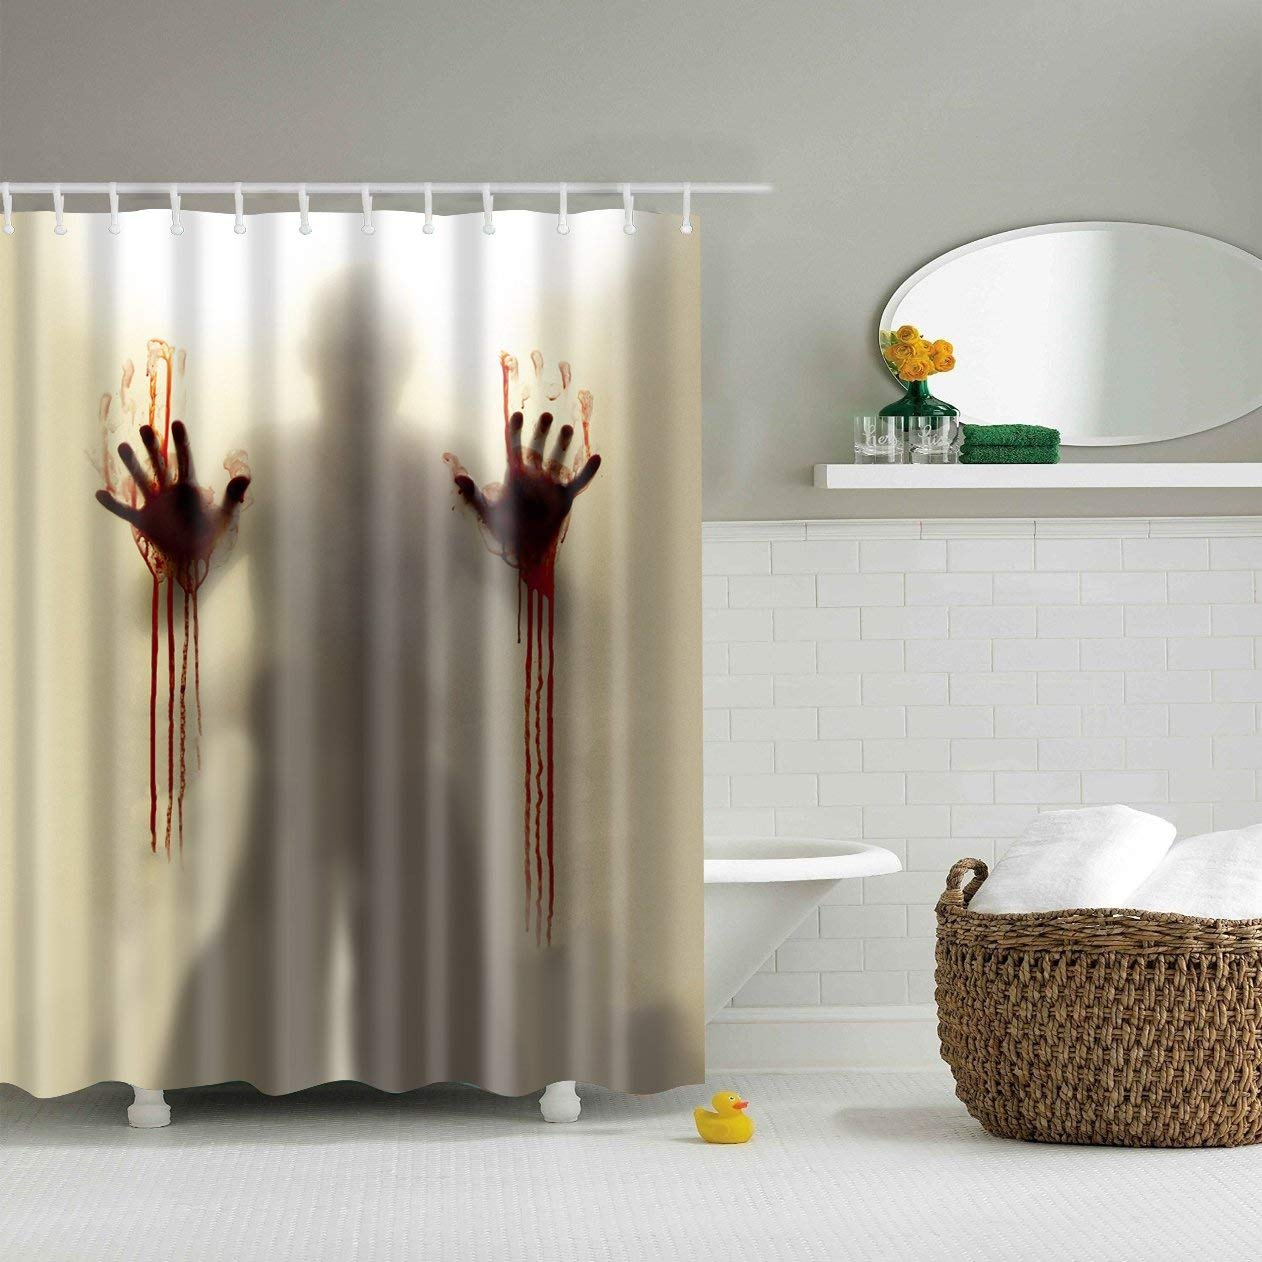 Buy Funny Novelty Bath Curtain Mysterious Scary And Funny